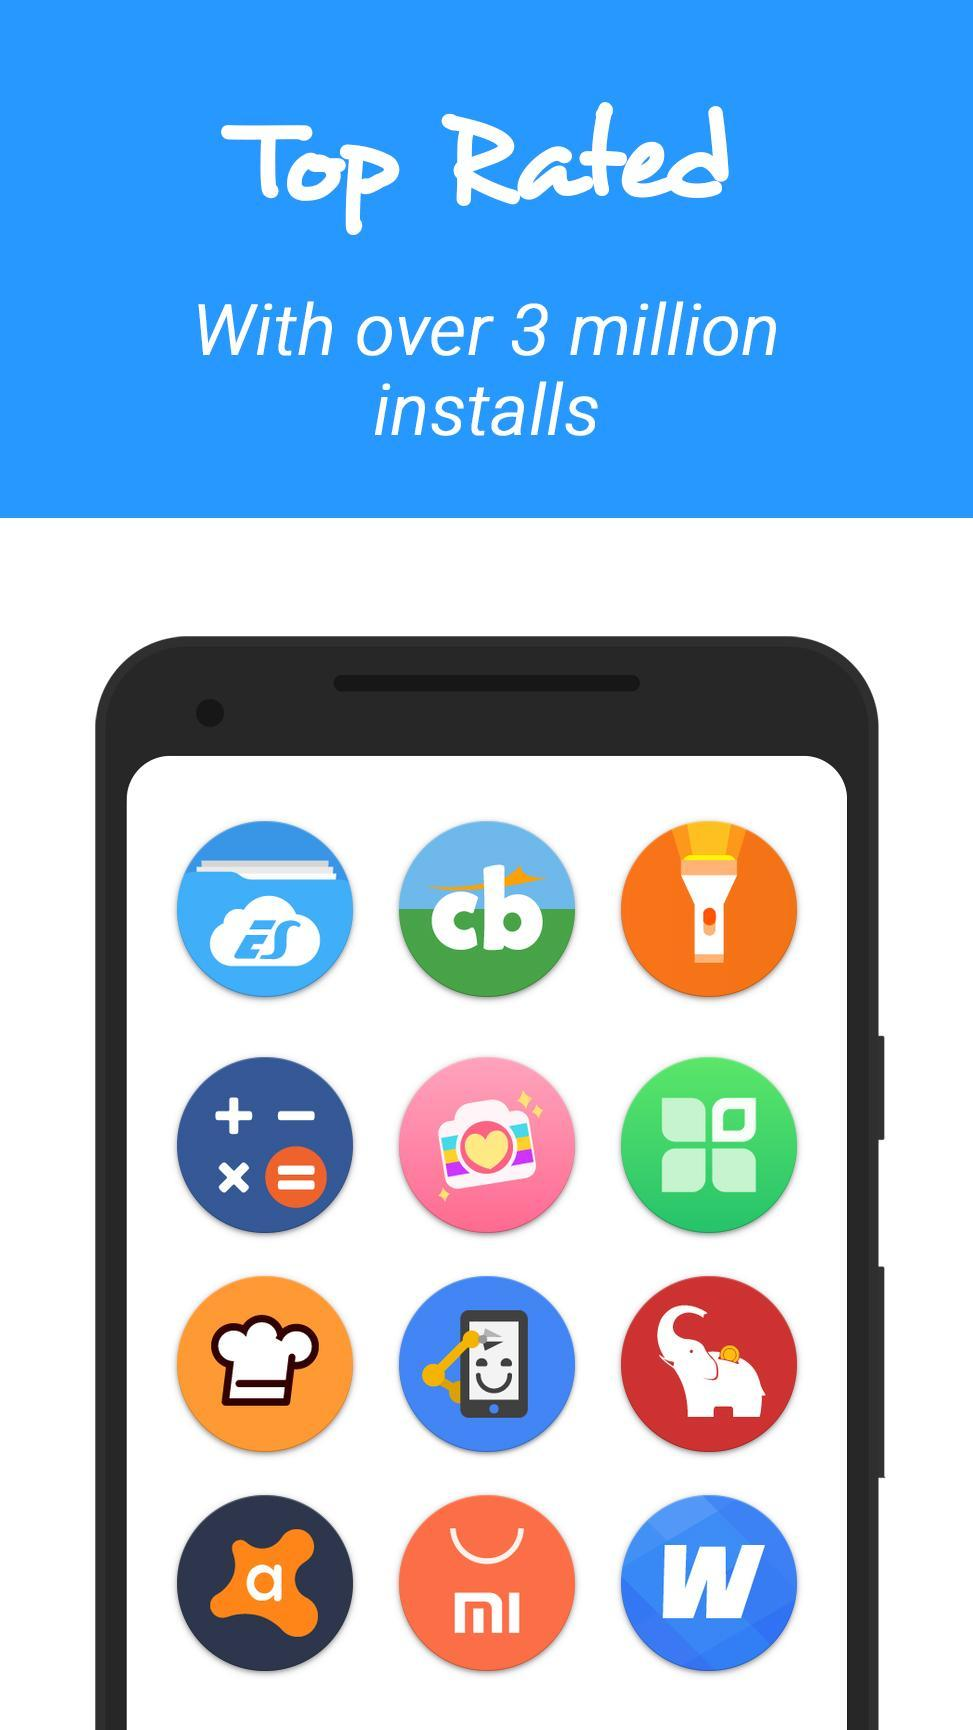 Pix UI Icon Pack 2 - Free Pixel Icon Pack for Android - APK